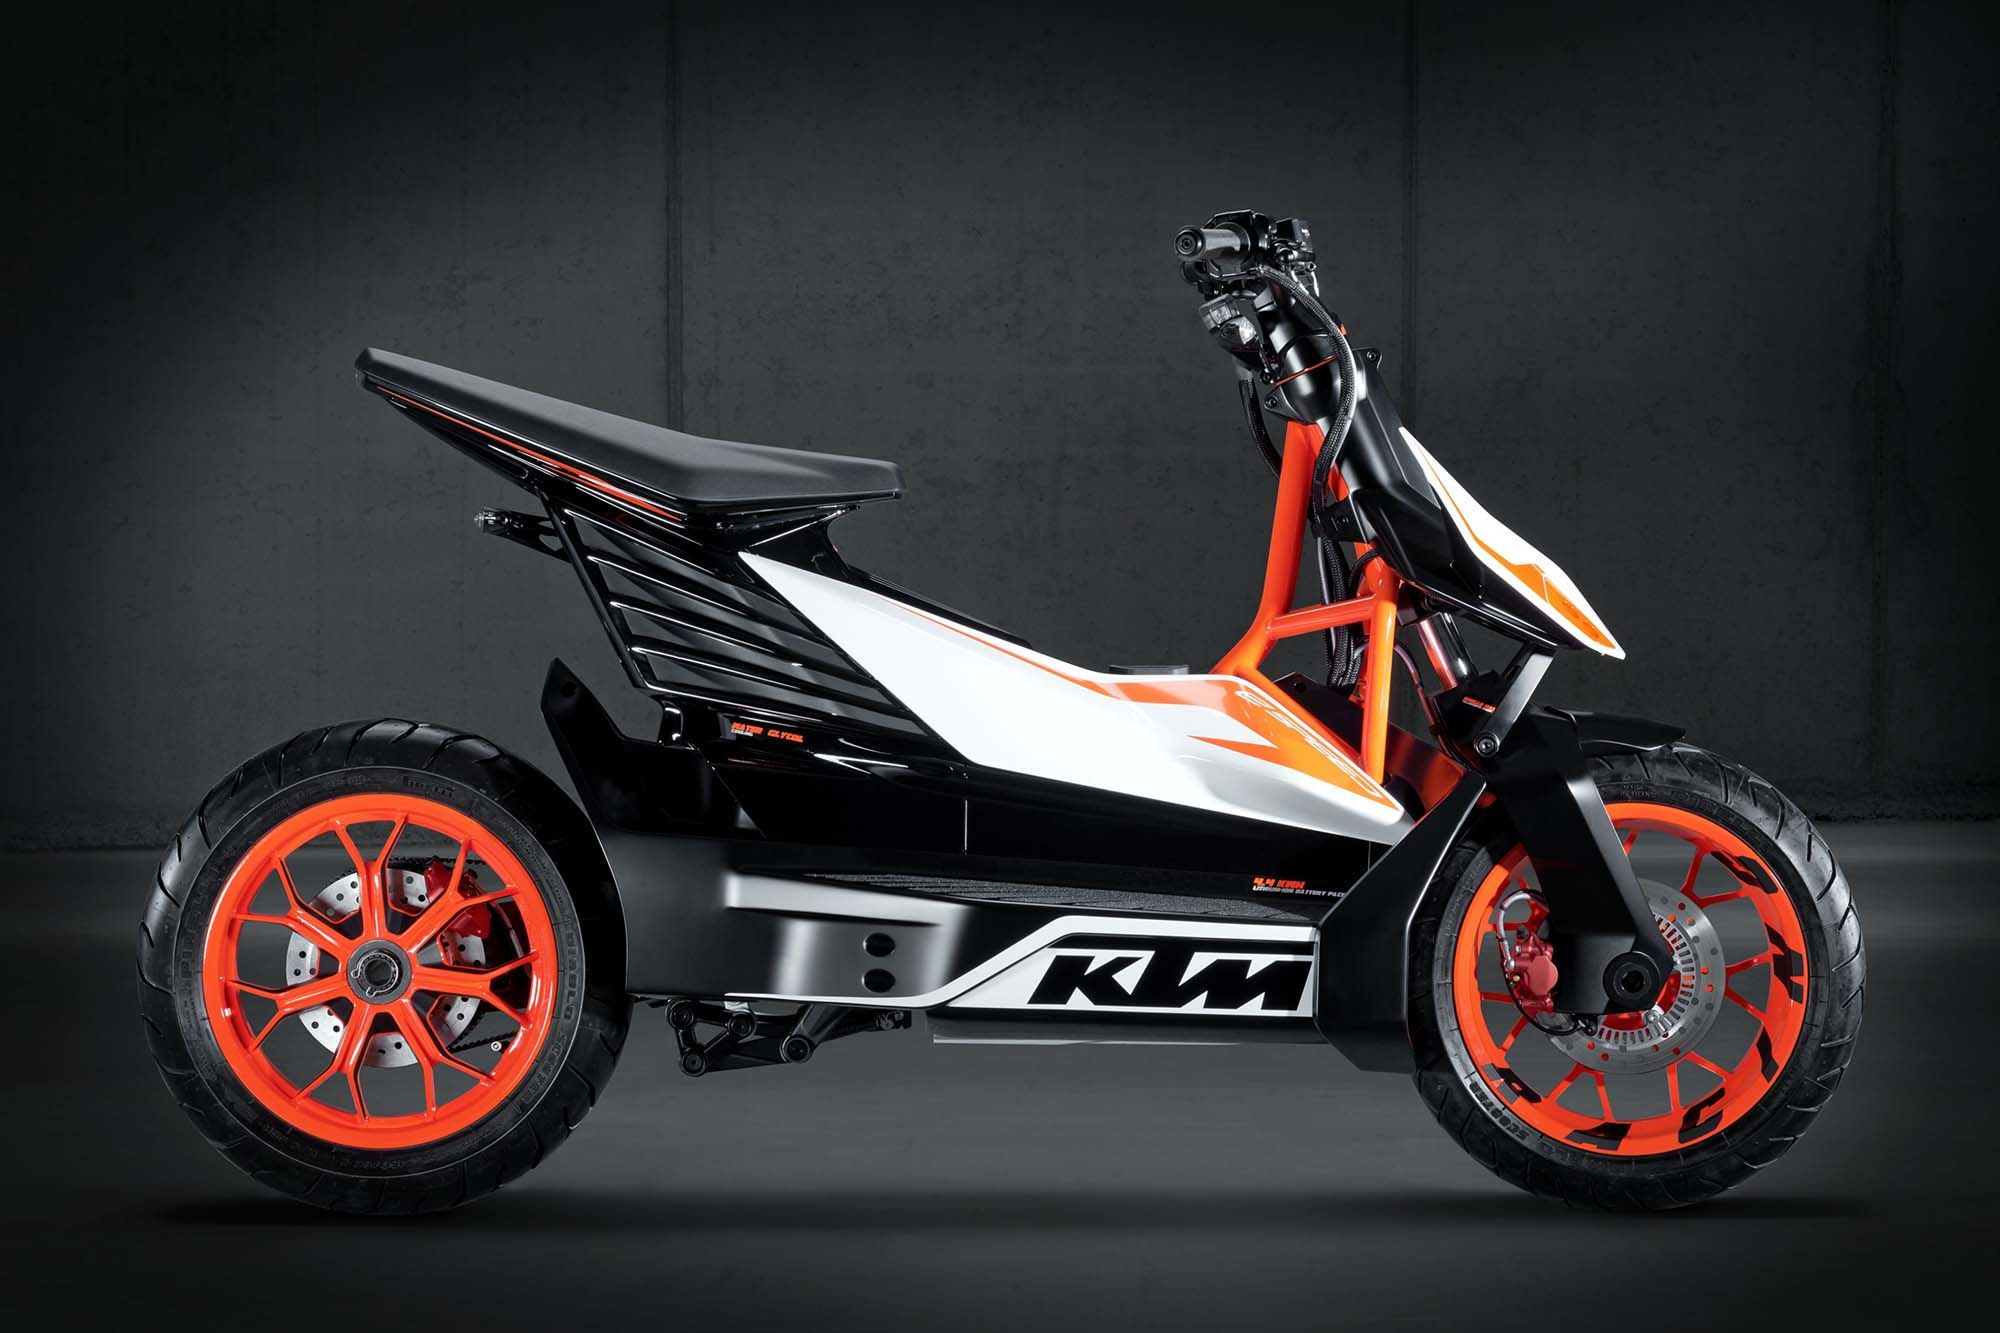 Ktm E Speed Electric Scooter Concept Design Is This Electric Motorbike Electric Dirt Bike Ktm